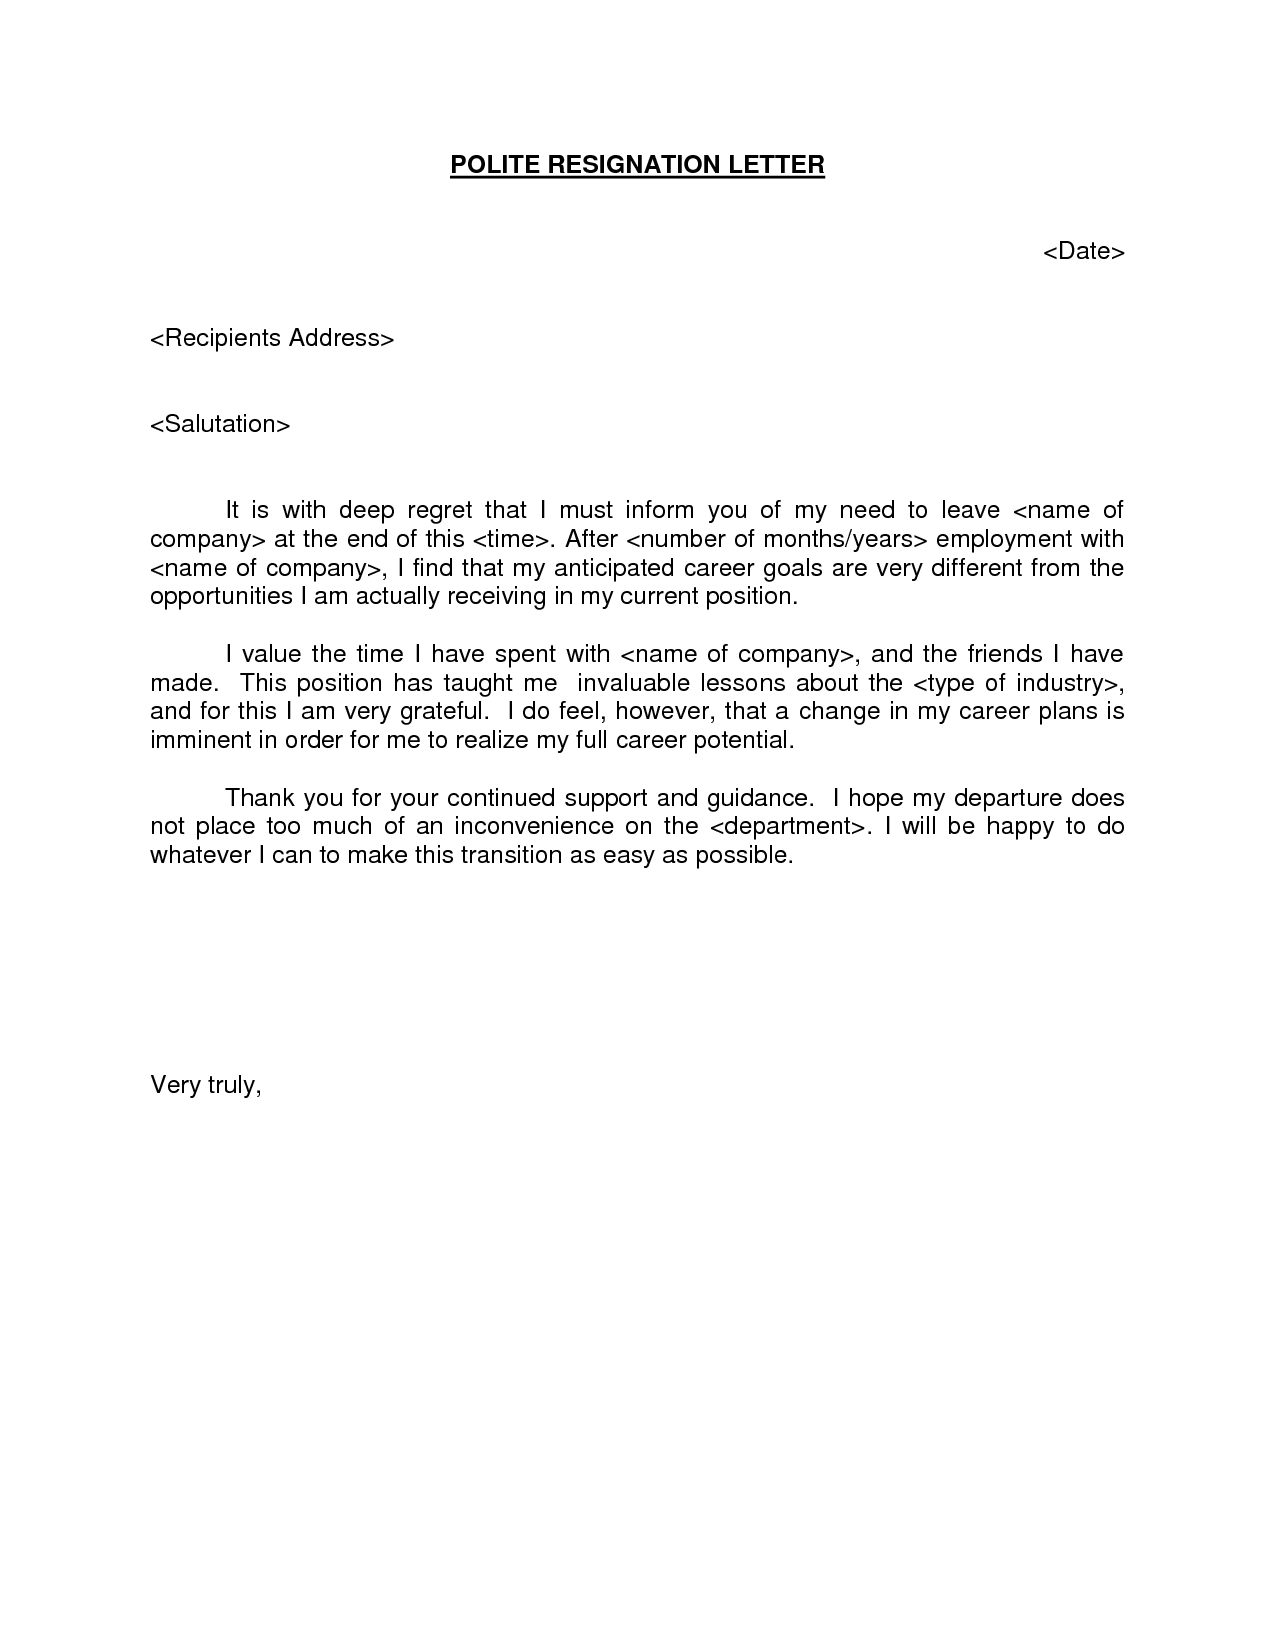 Resignation Letters | Resignation Letter Letter Of Resignation Meaning Effective